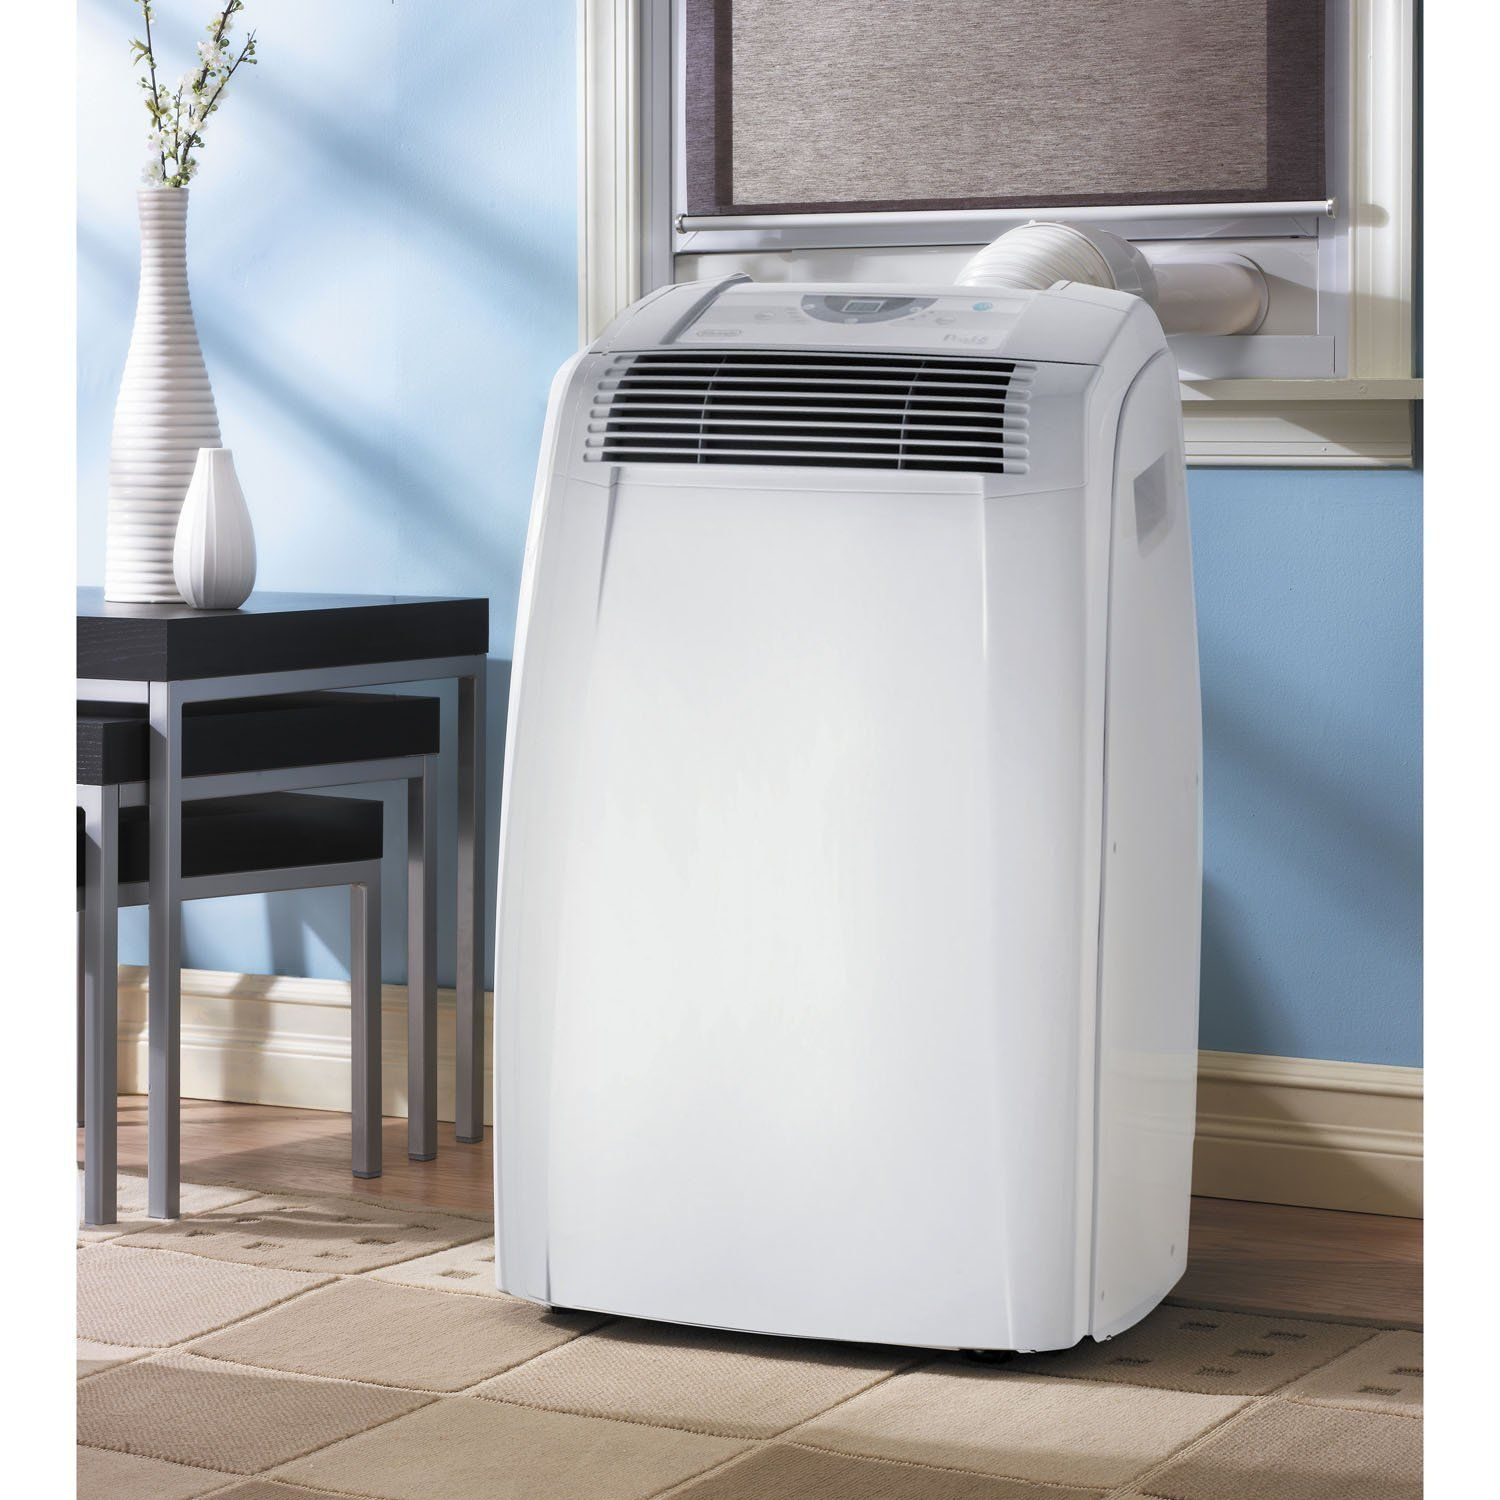 Image result for air conditioner Portable air